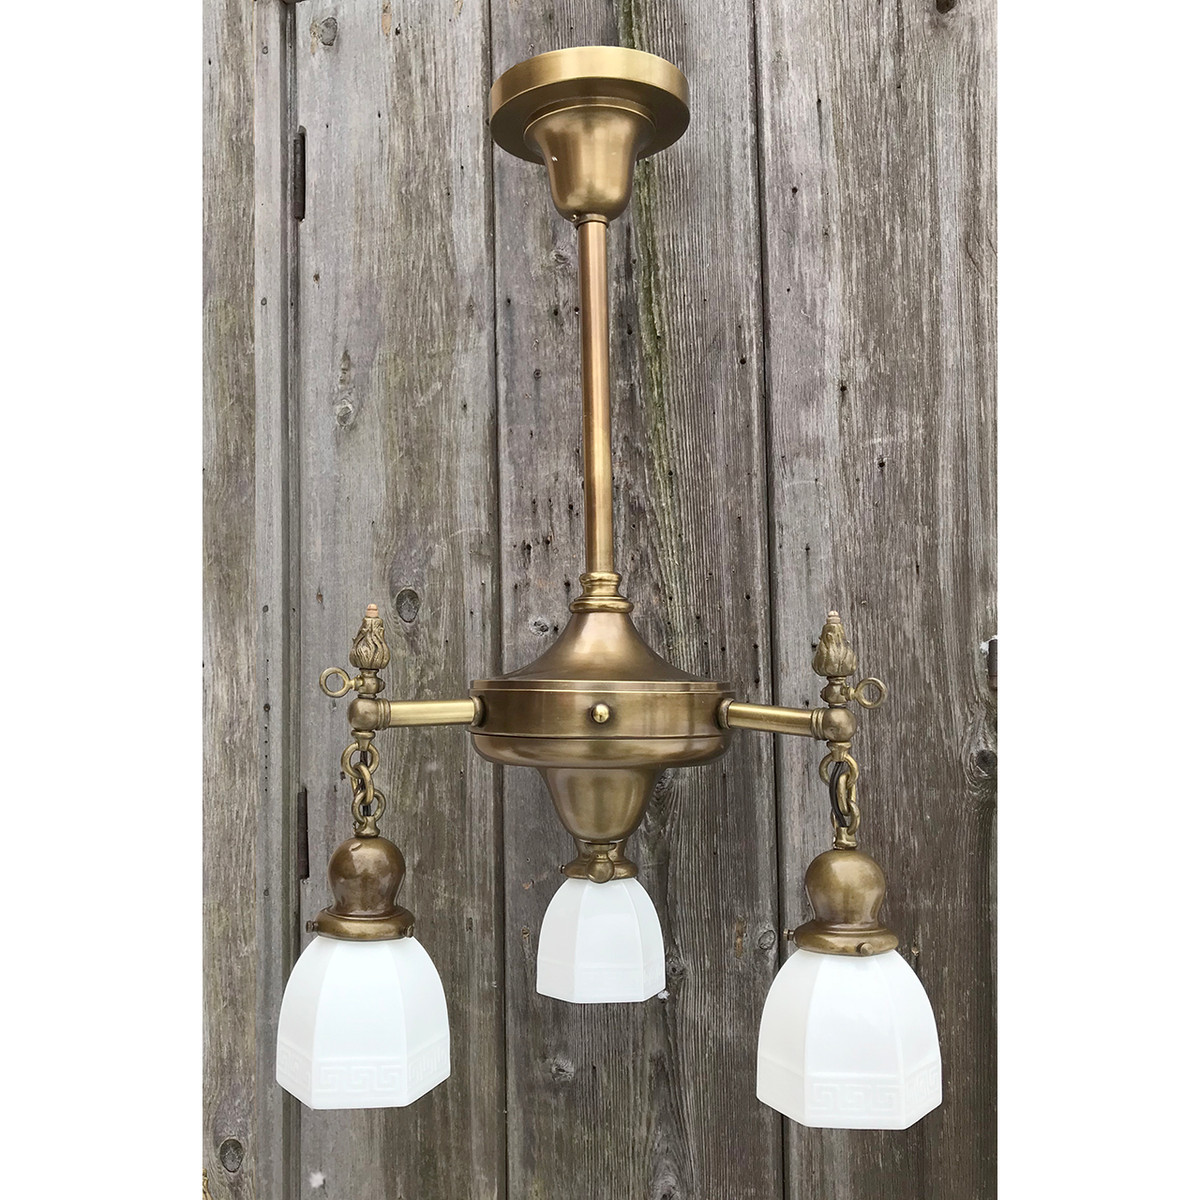 L19021 - Antique Colonial Revival Three Light Hanging Fixture